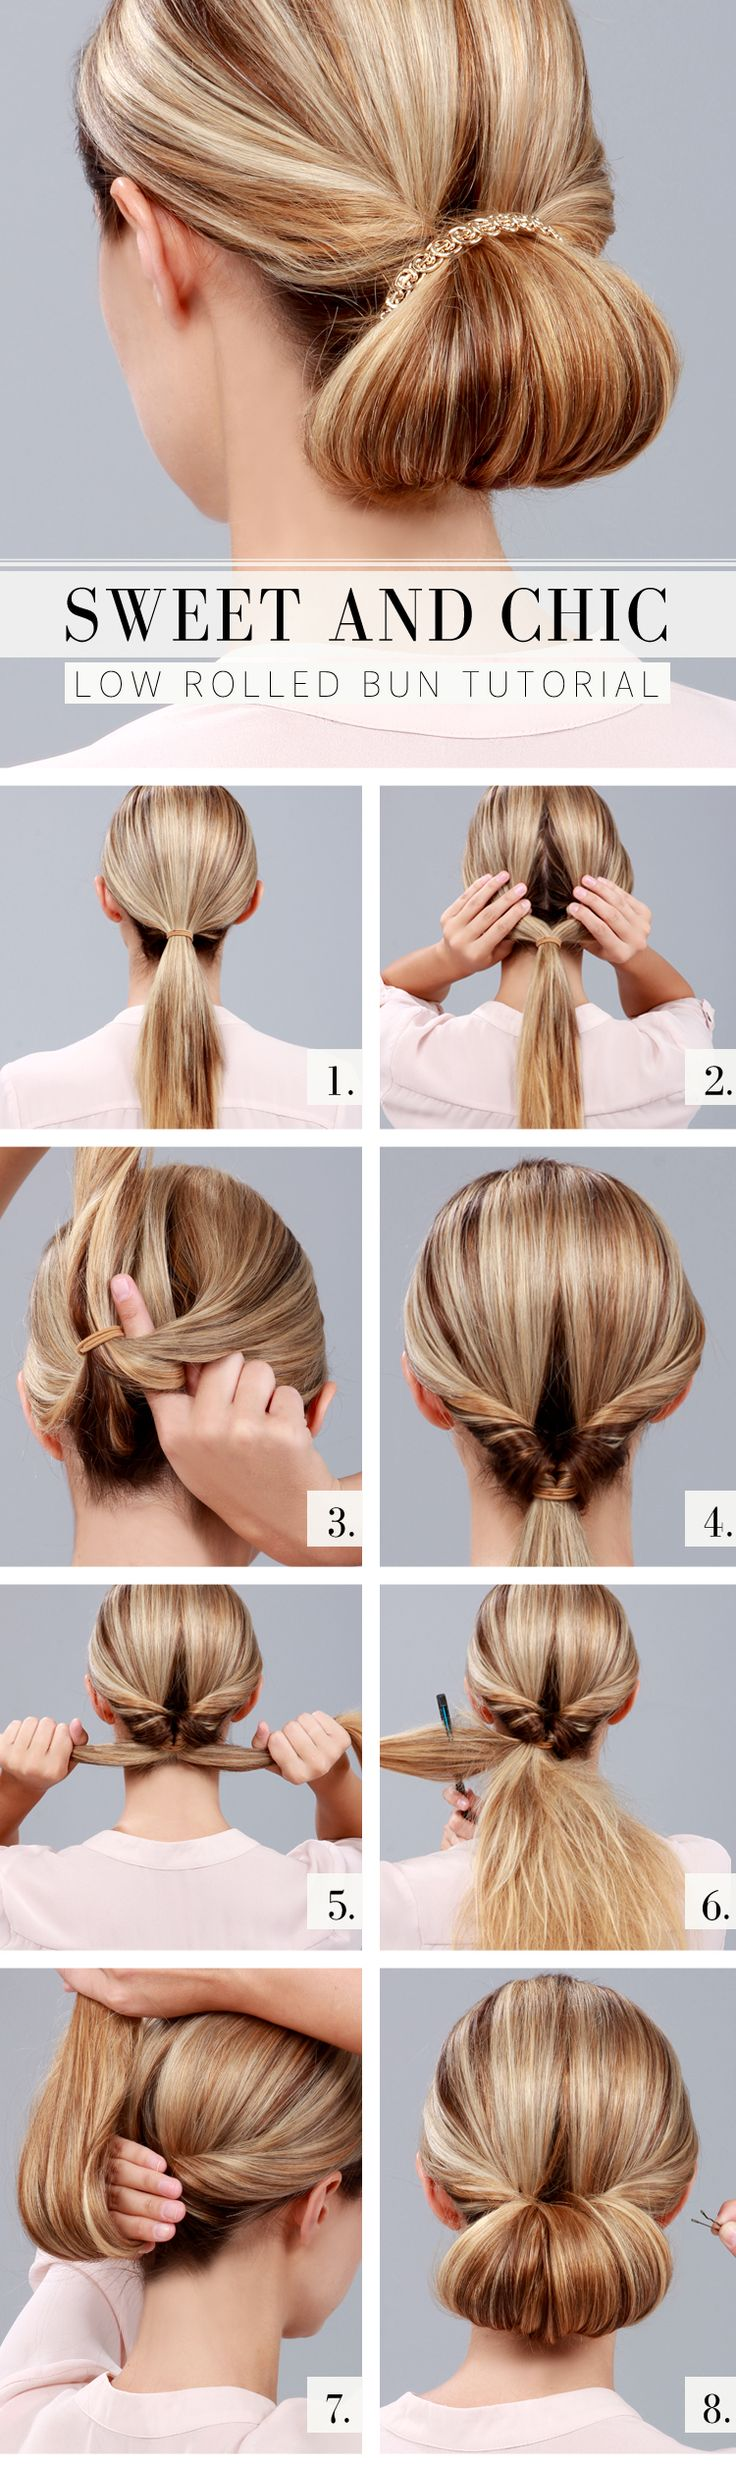 Simple cute low bun